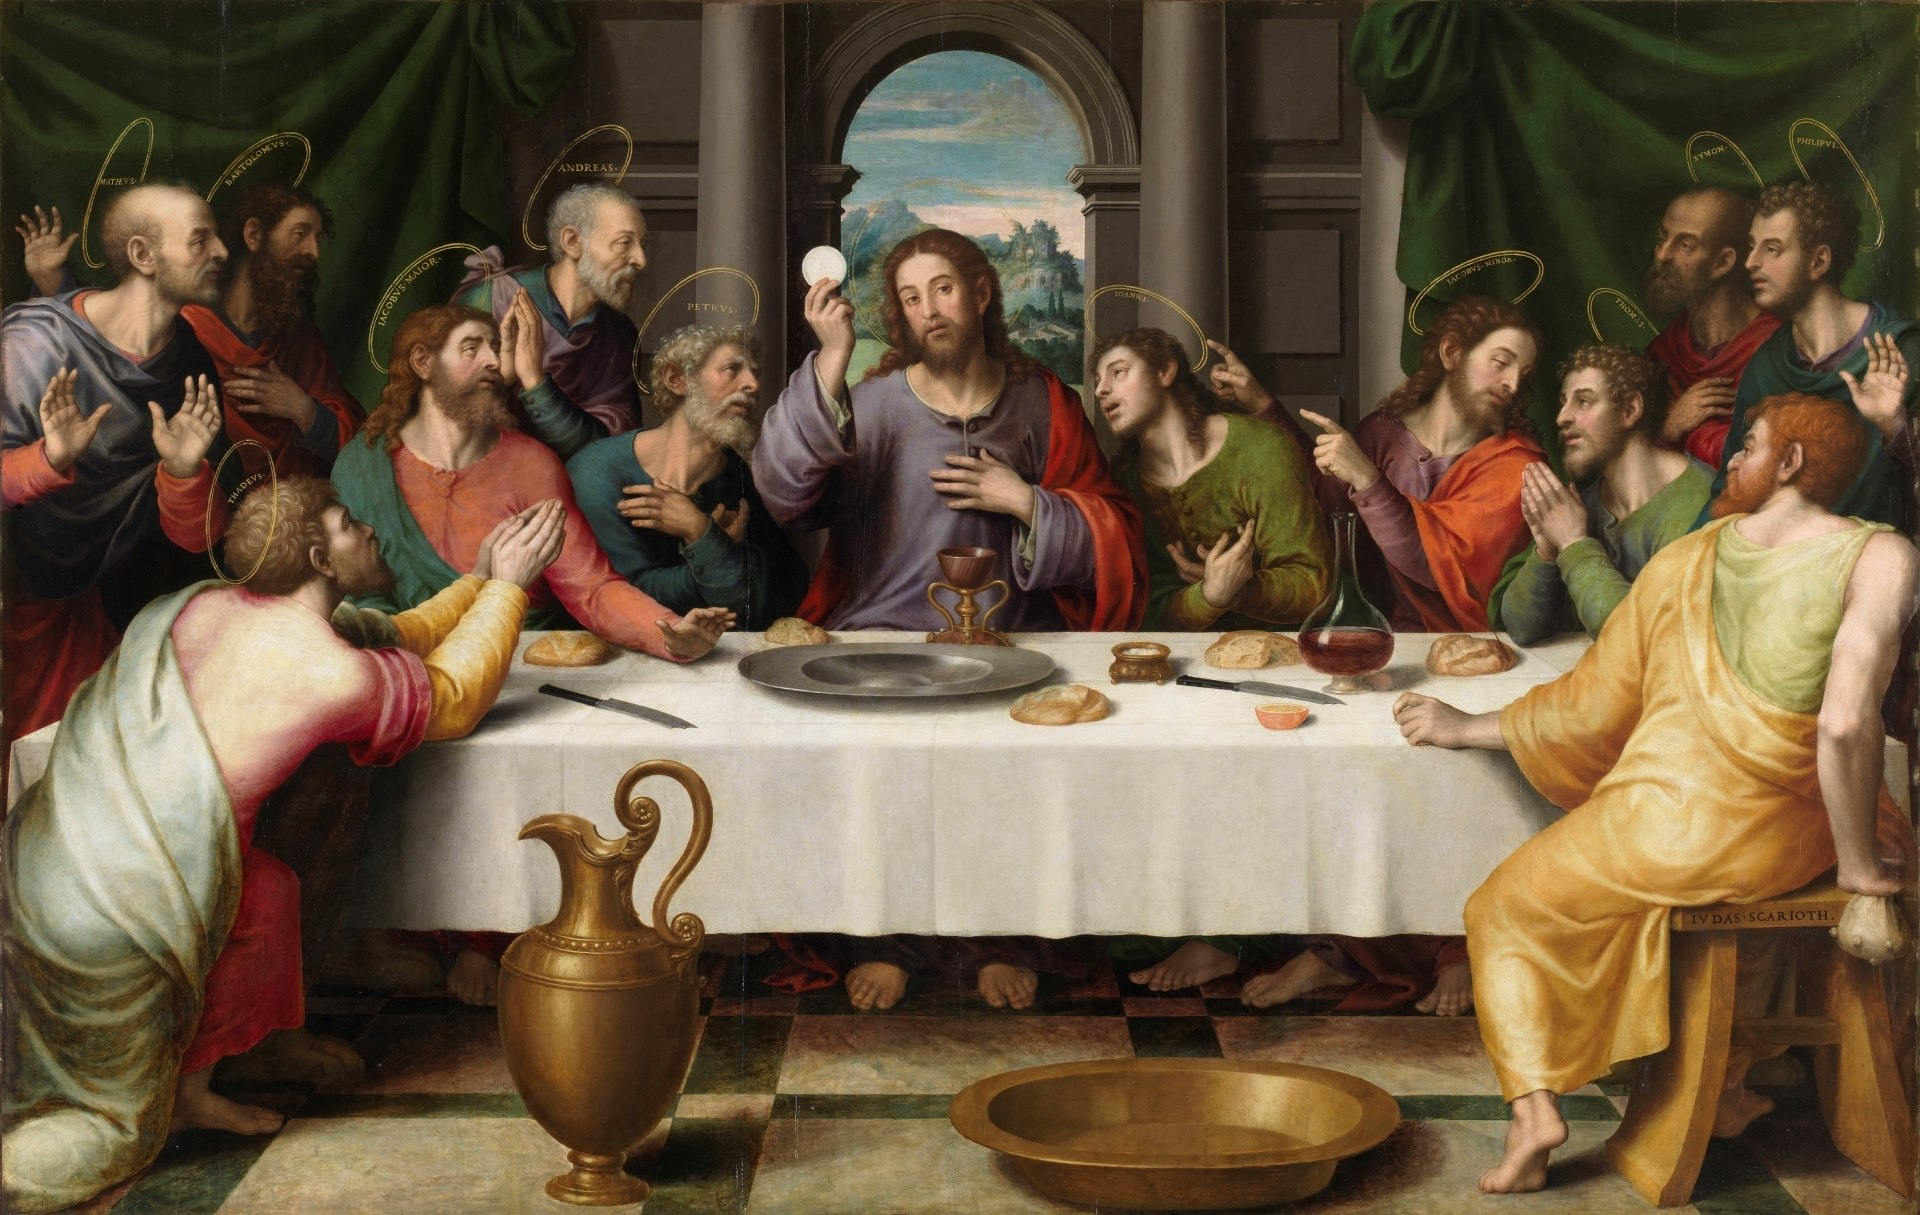 The Eucharist has been a key theme in the depictions of the Last Supper in Christian art,[1] as in this 16th-century Juan de Juanes painting.